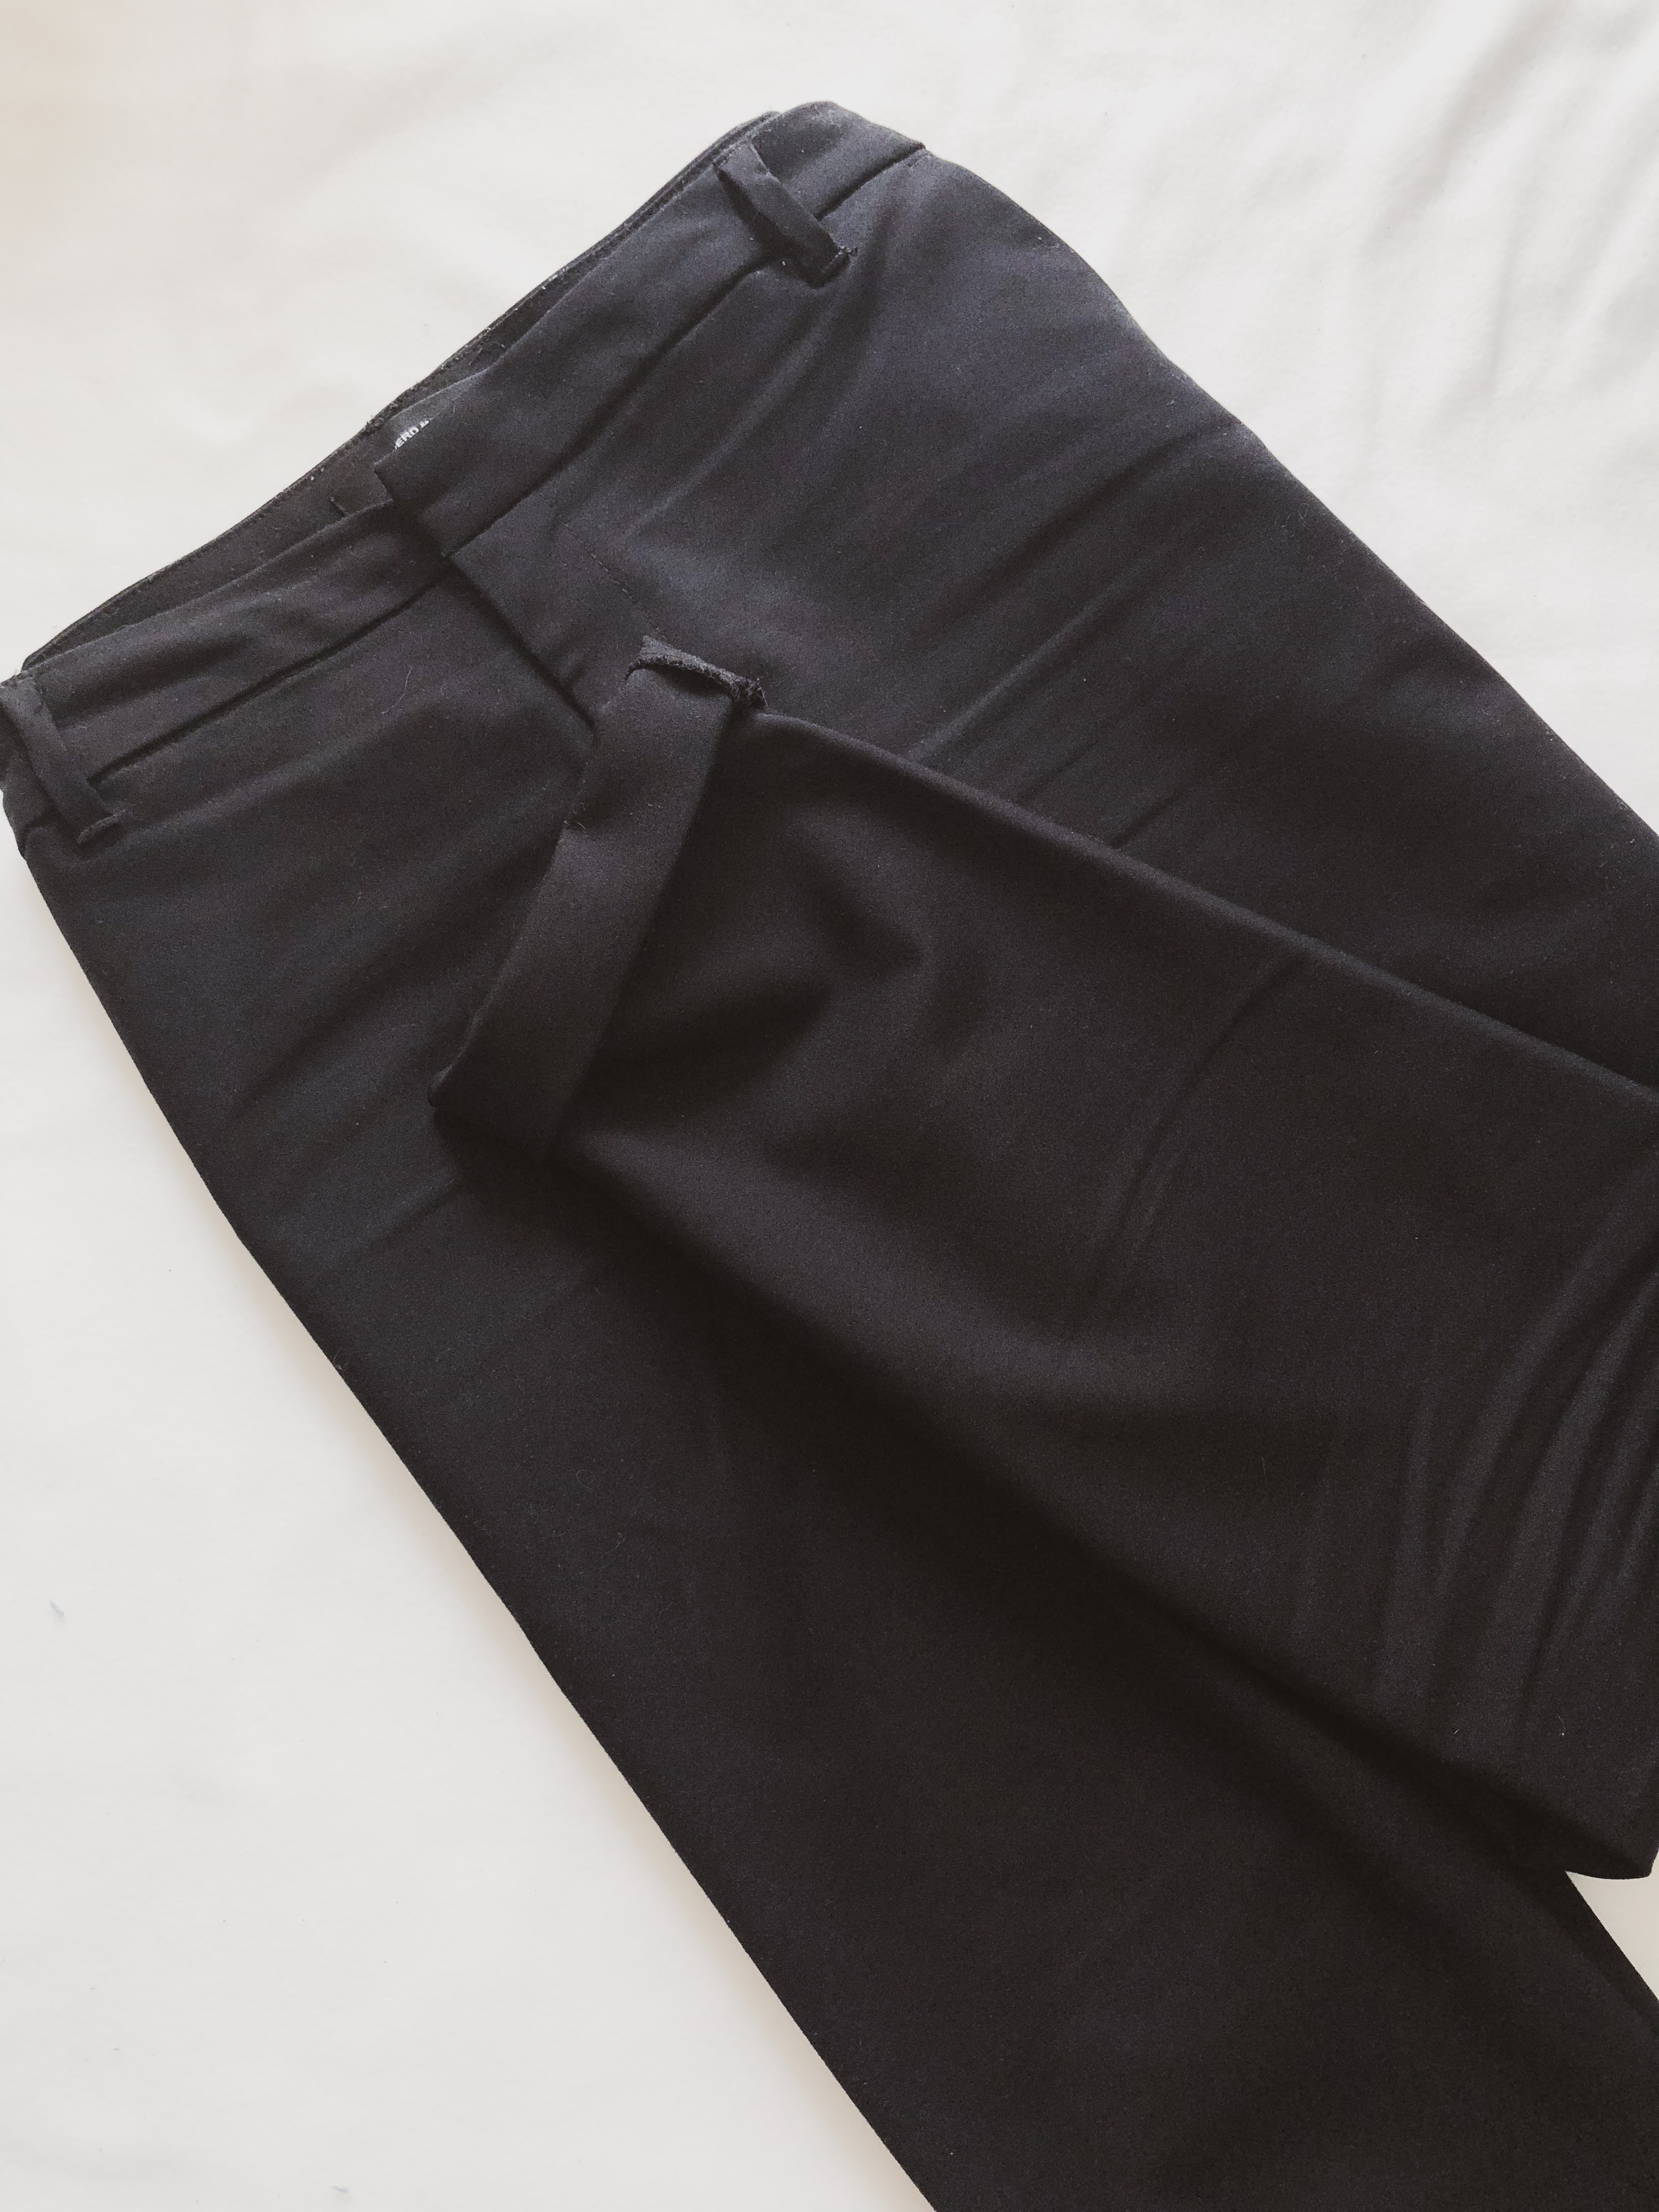 What I got in sales: Black trousers Vero Mood